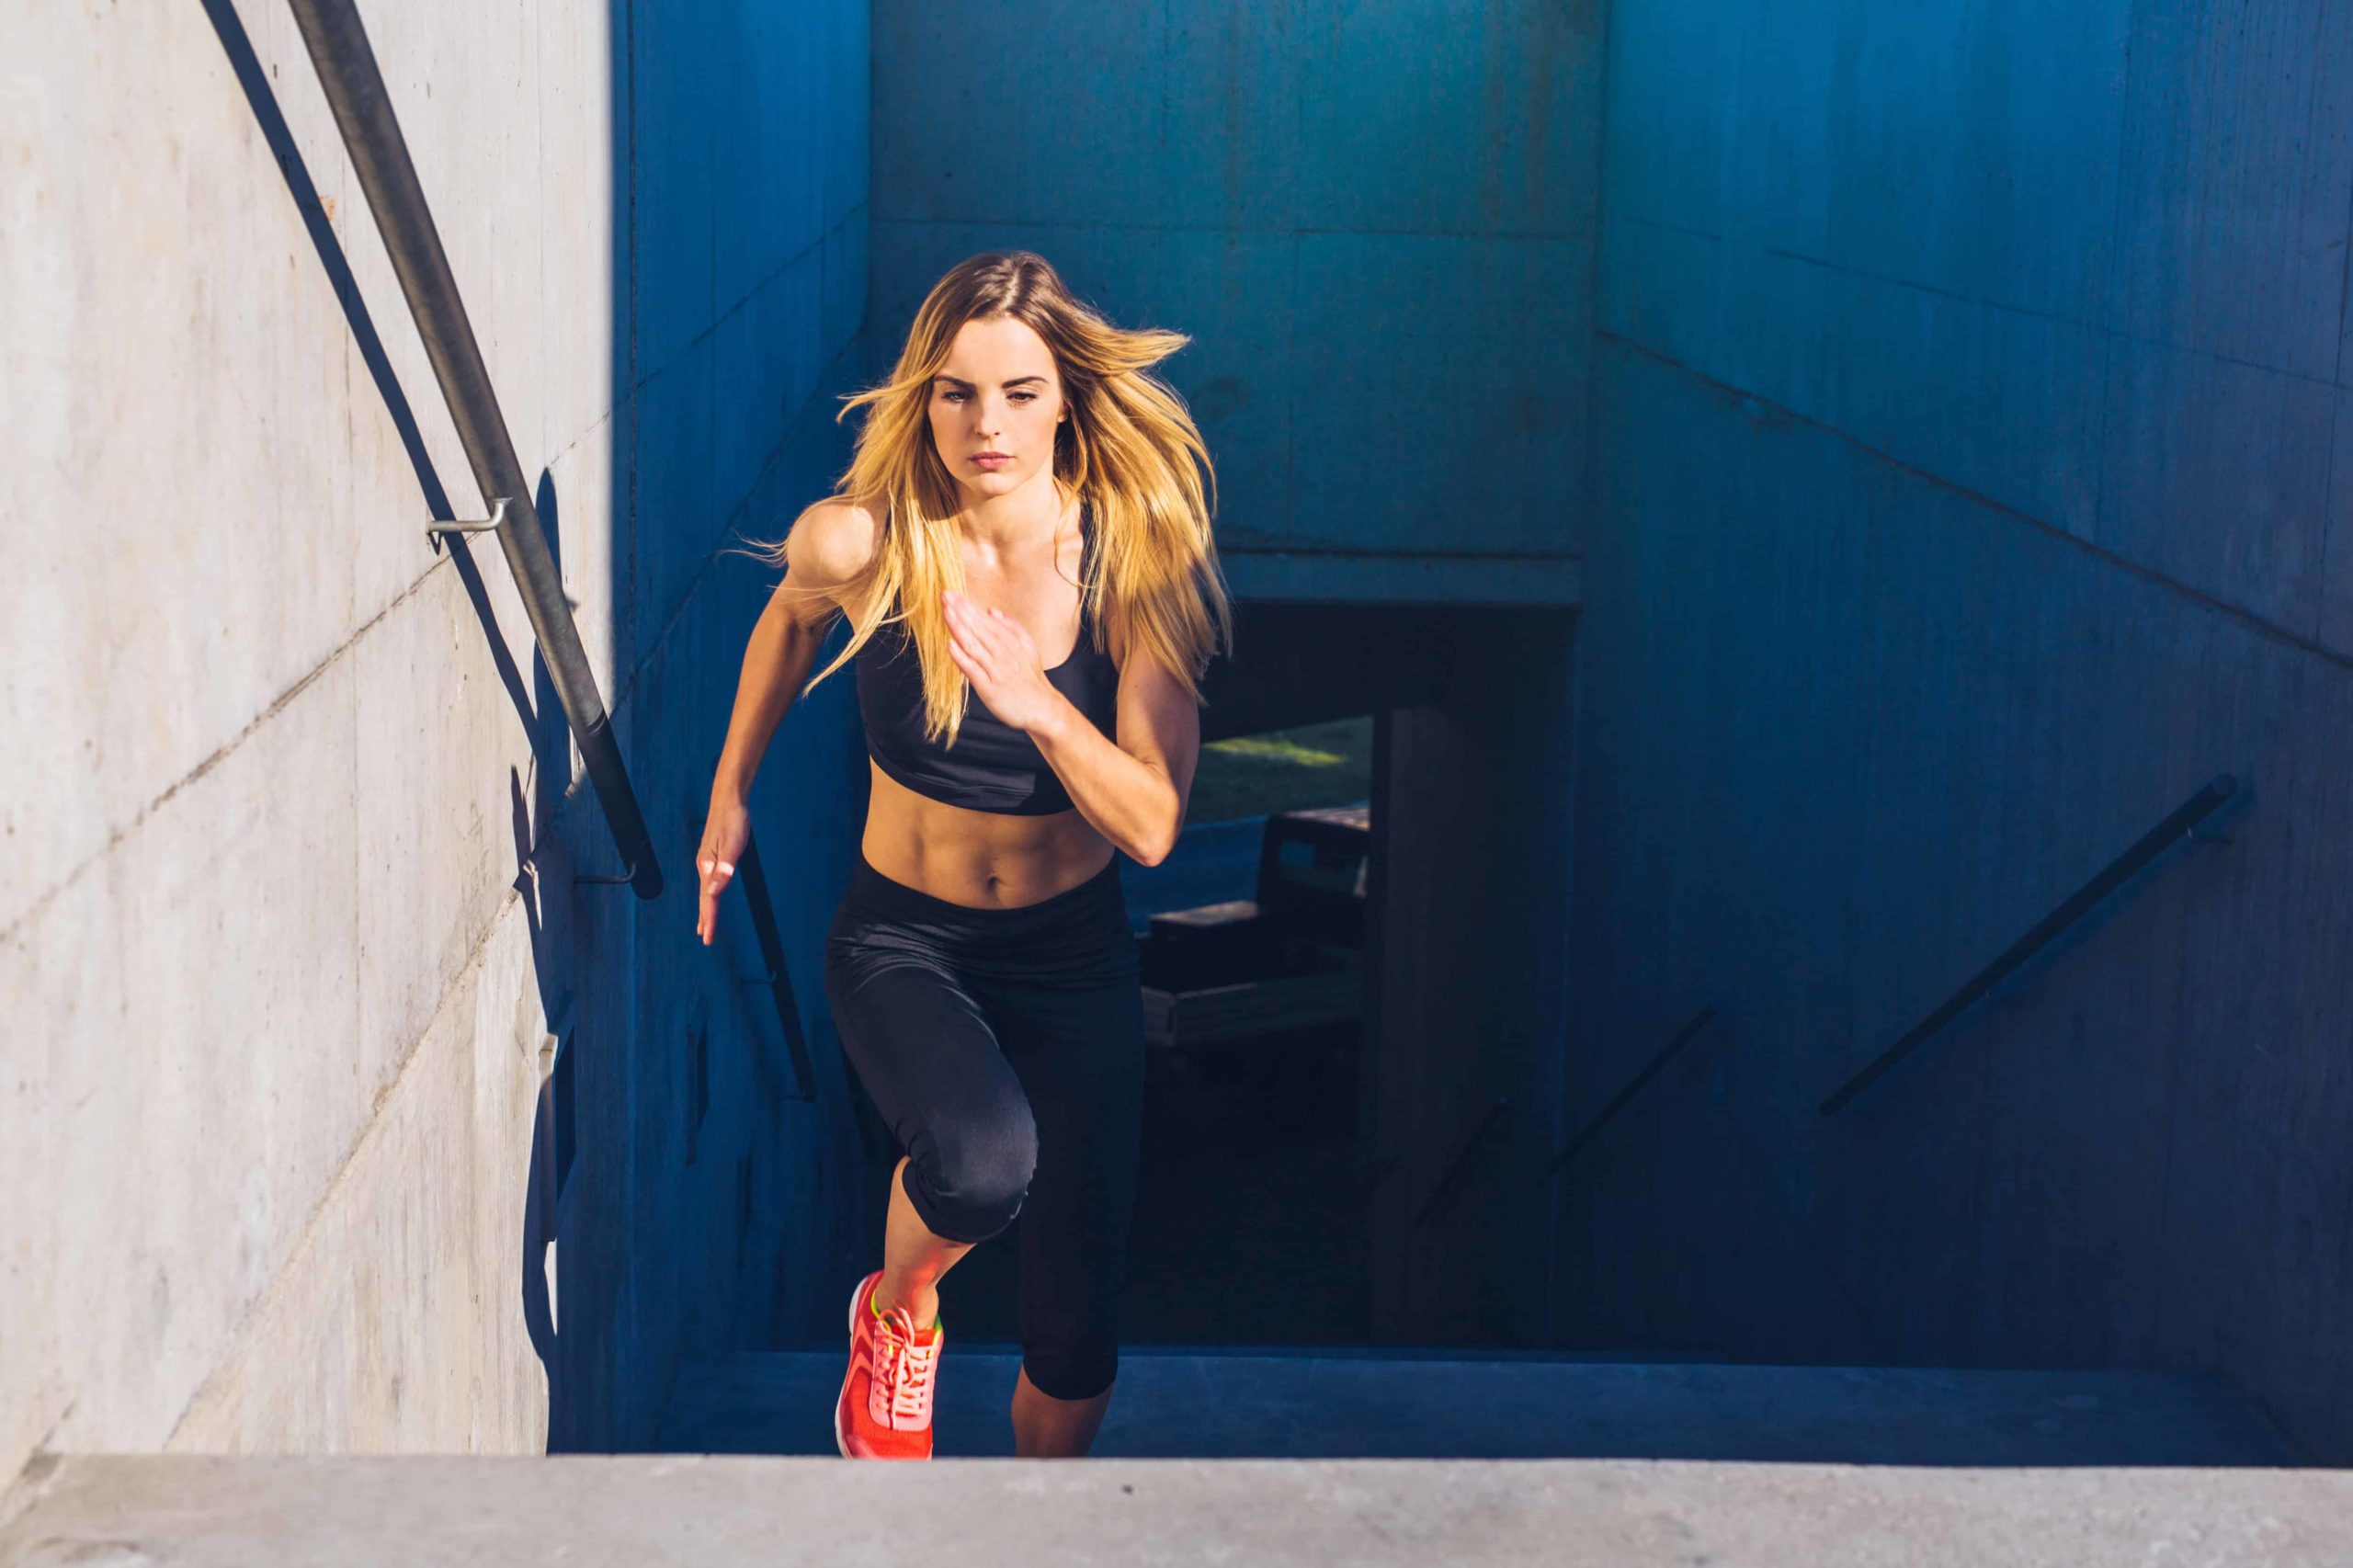 Is Interval Training Good For Fat Loss?